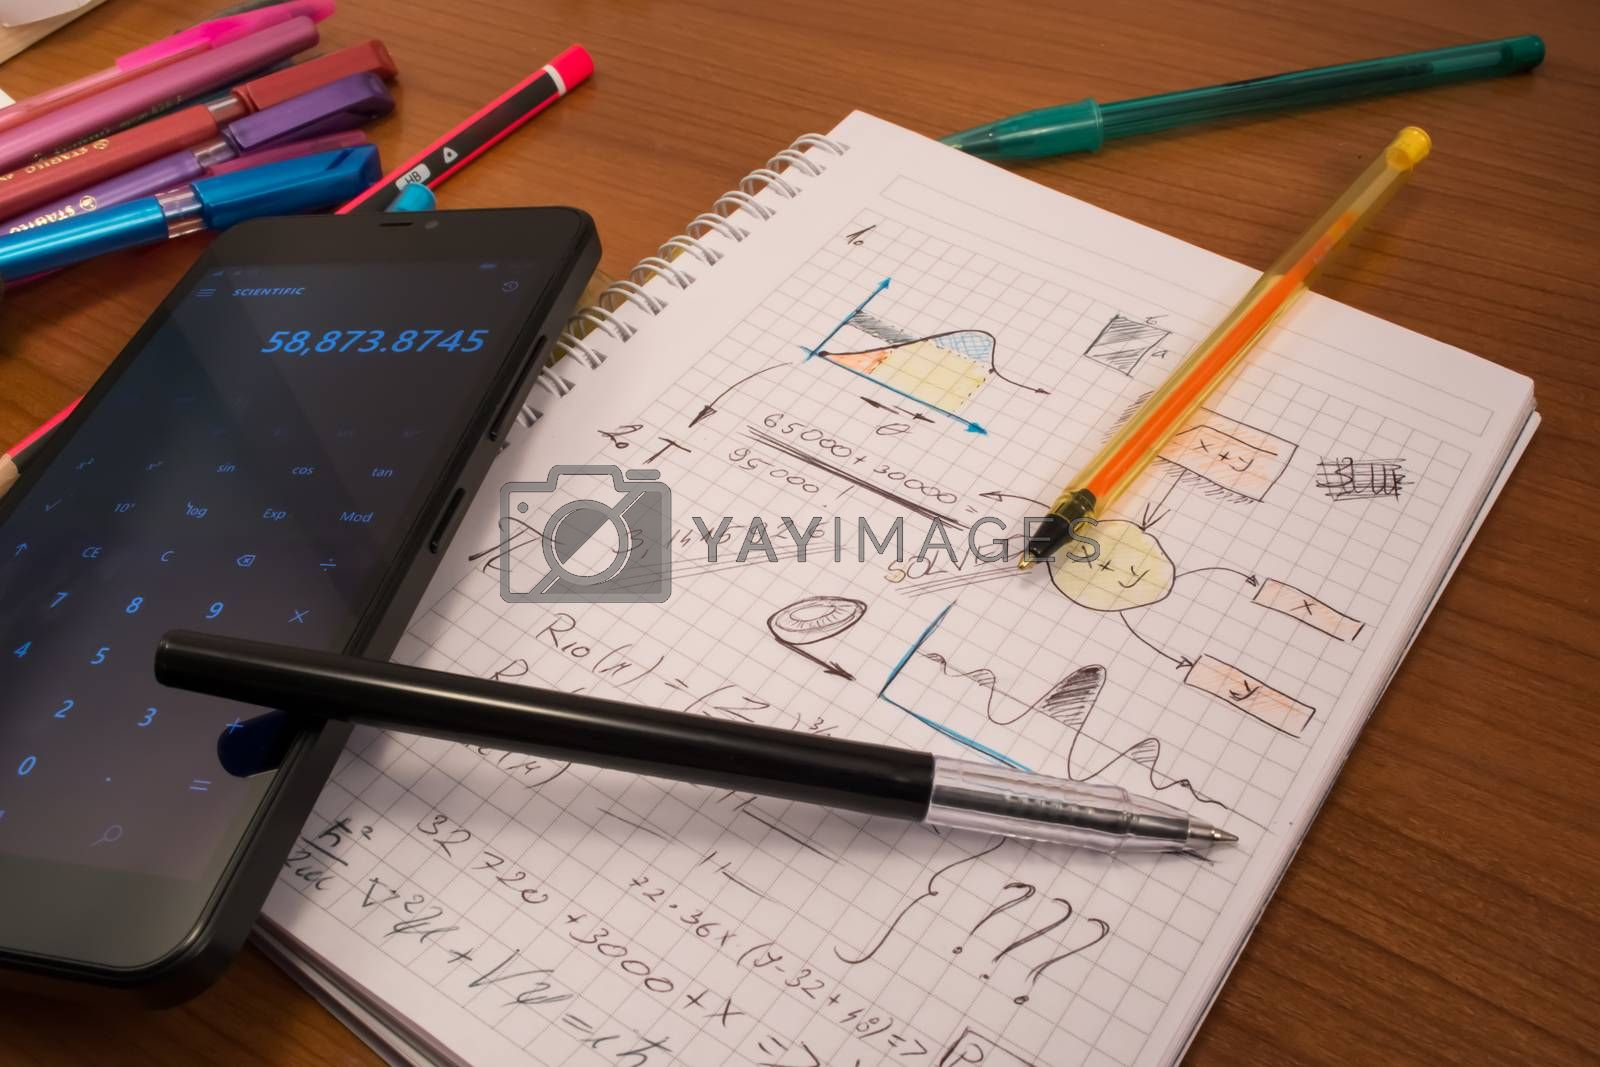 Notebook full of mathematics. Smart phone and pencils are visible